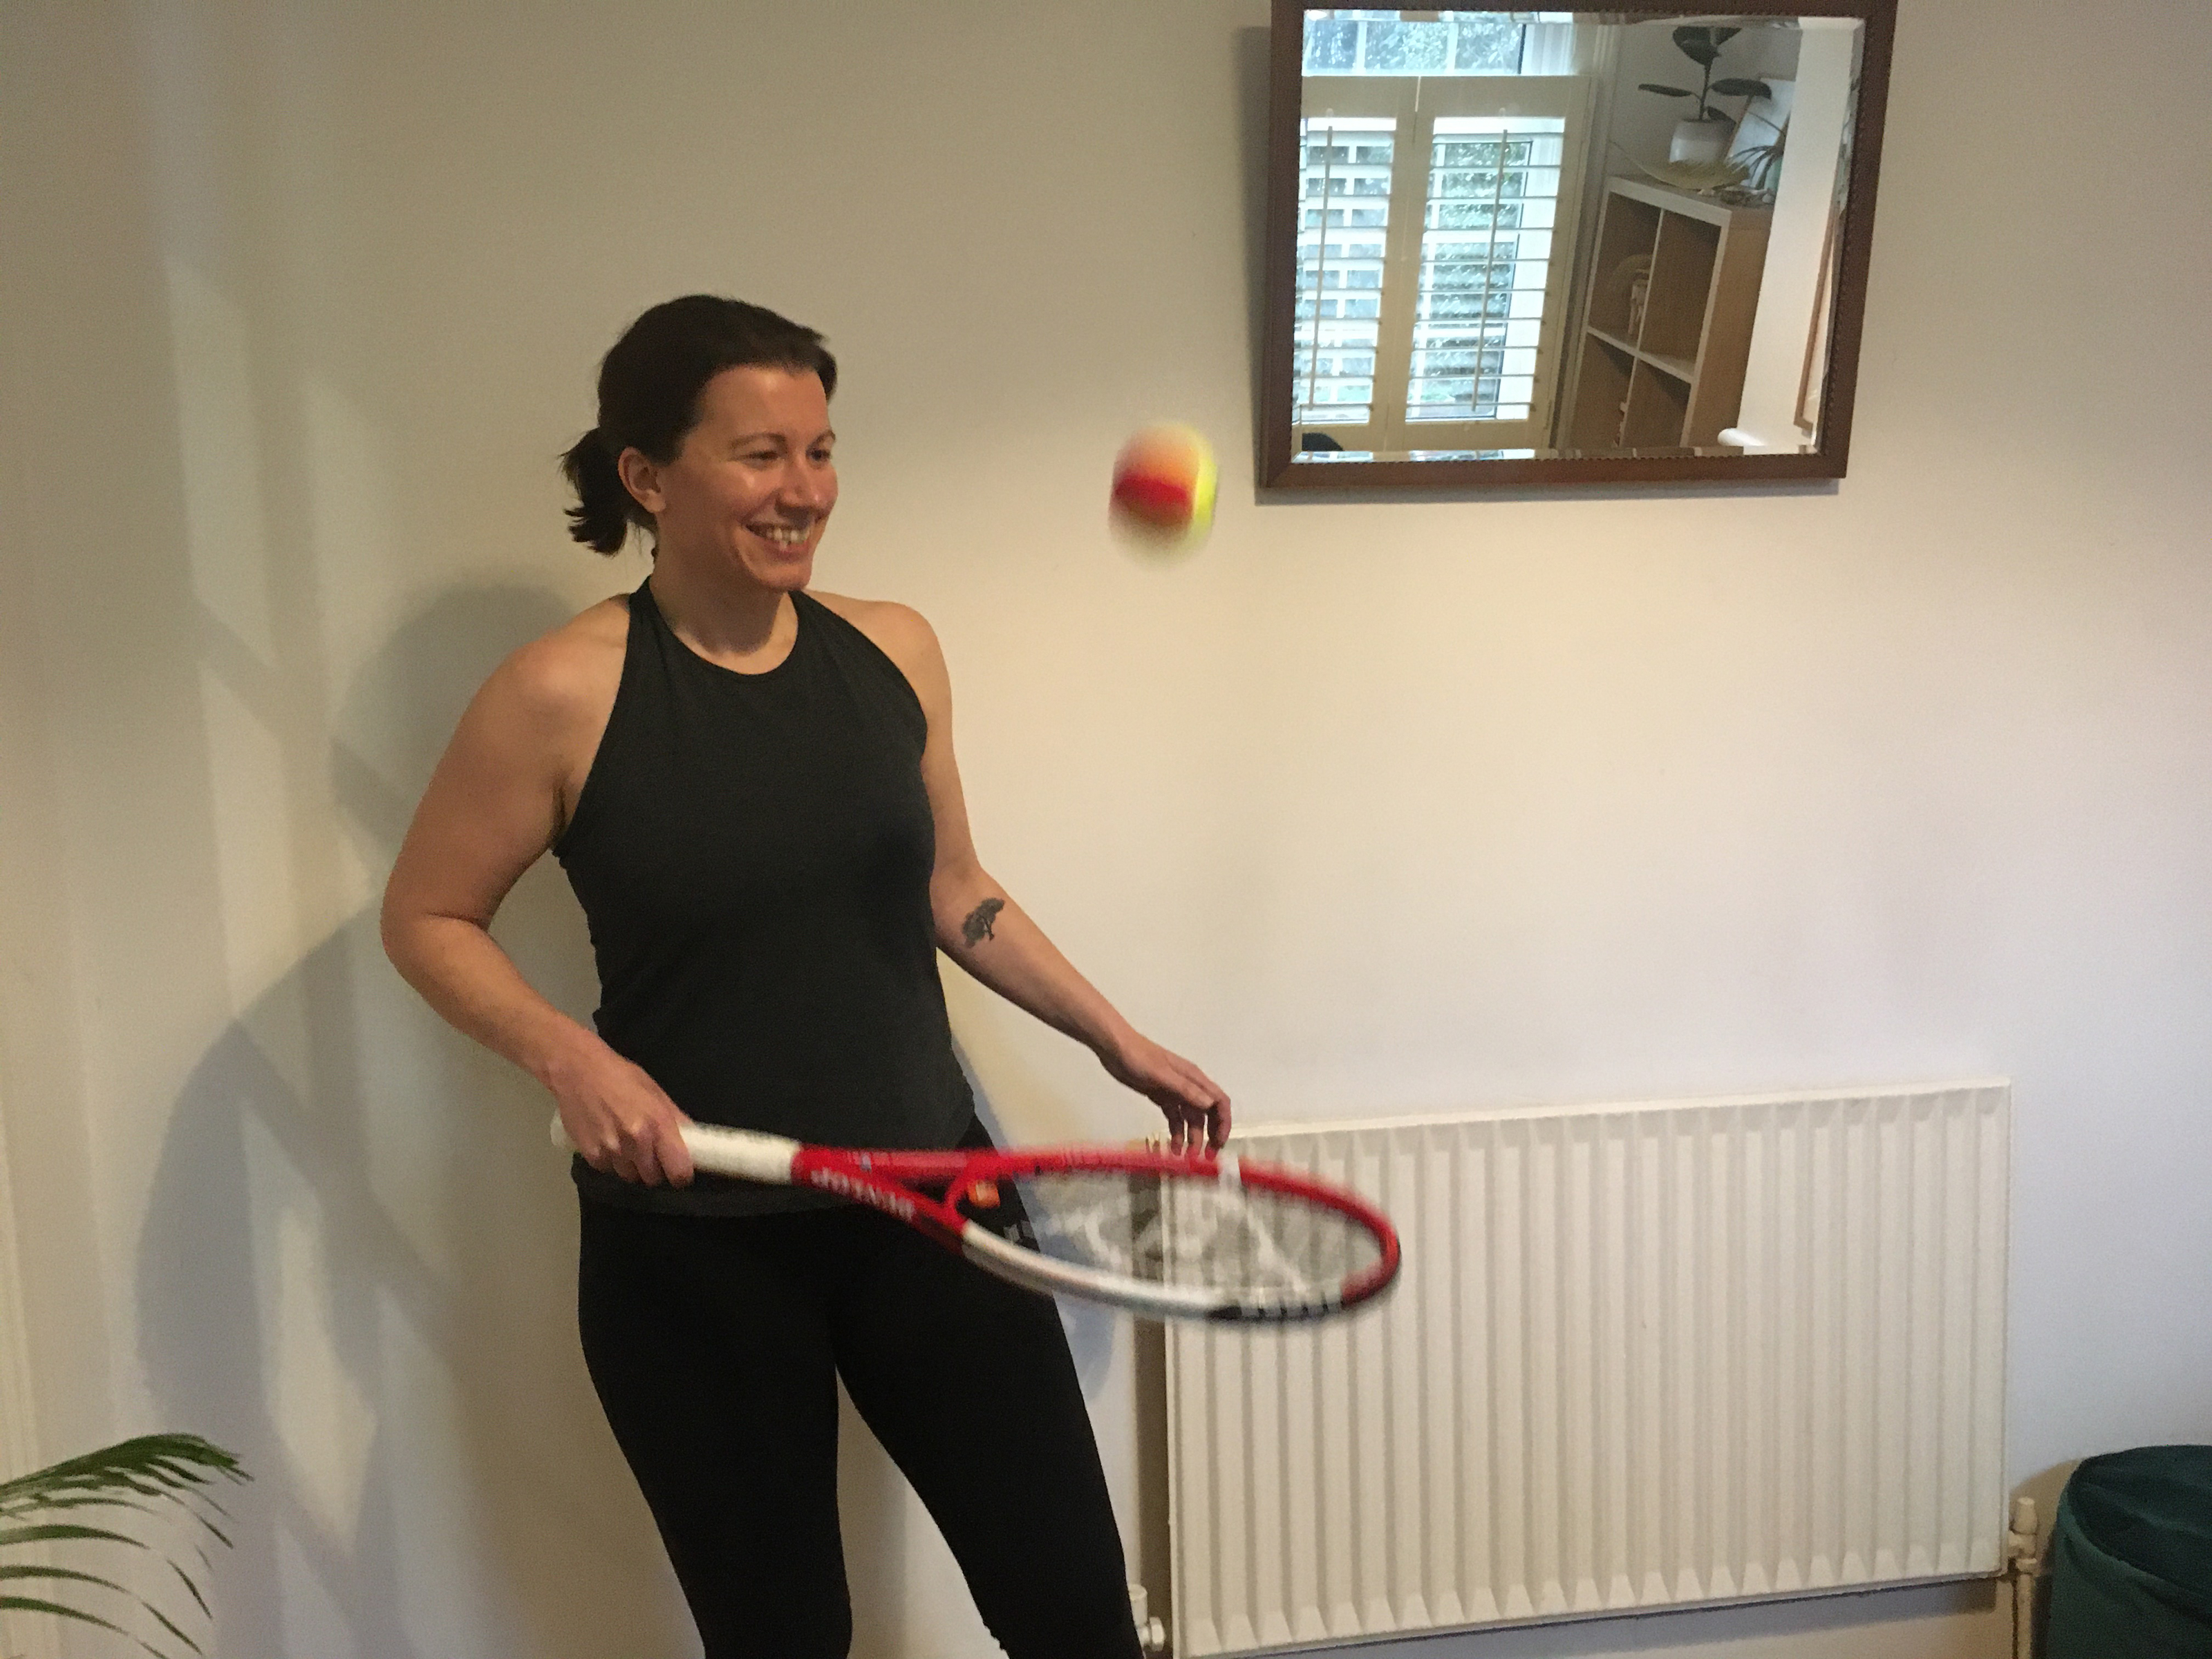 Abi Jackson doing a tennis workout at home